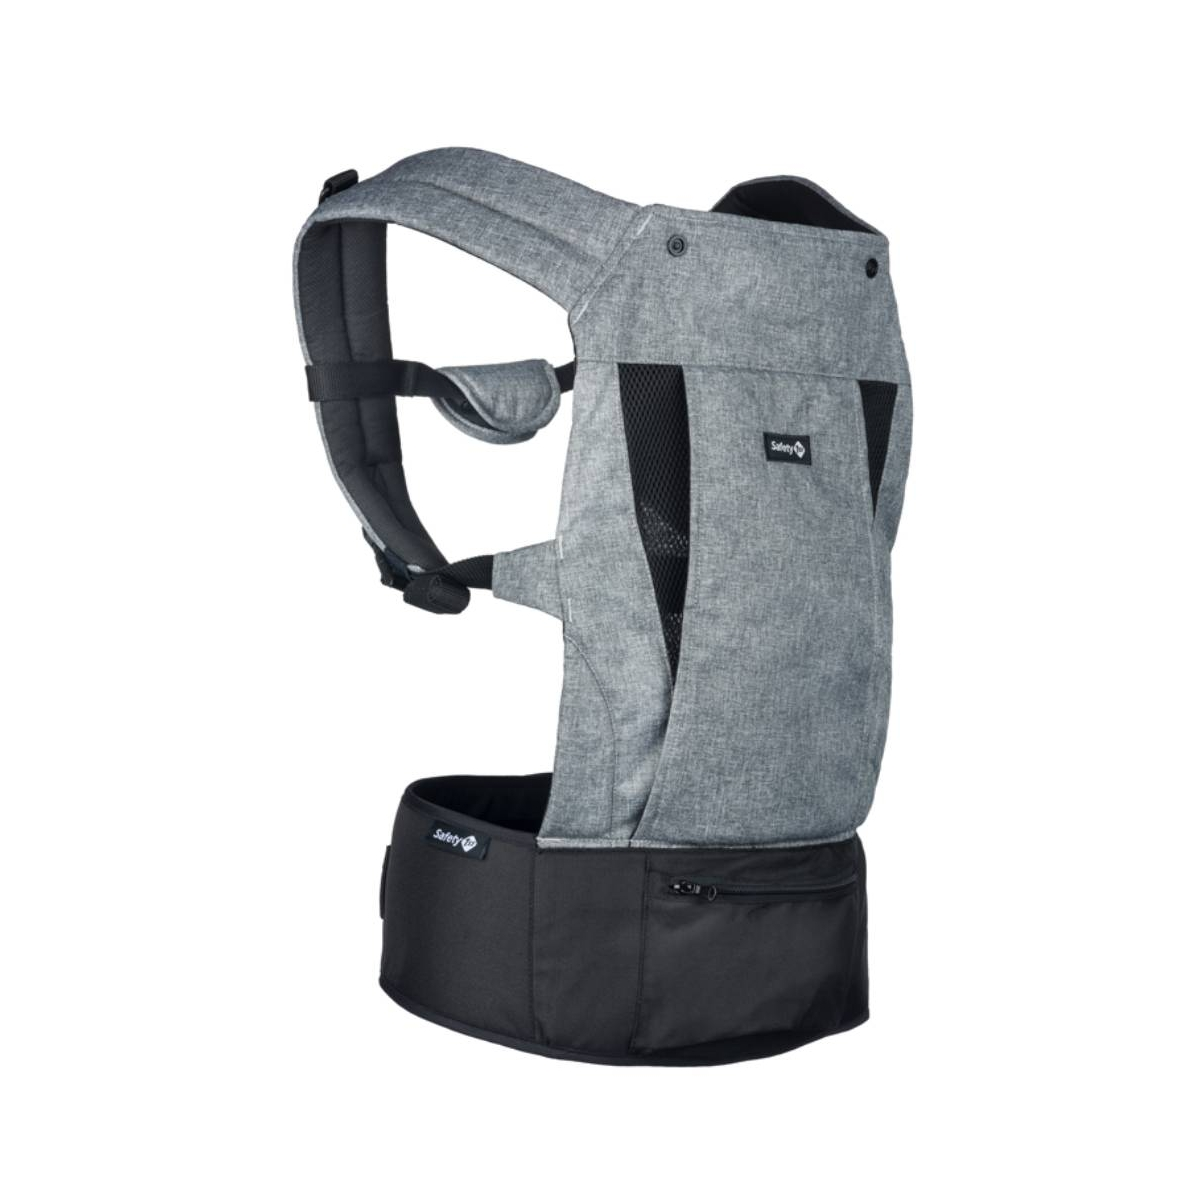 Safety 1st Physionest Baby Carrier-Black Chic (NEW)